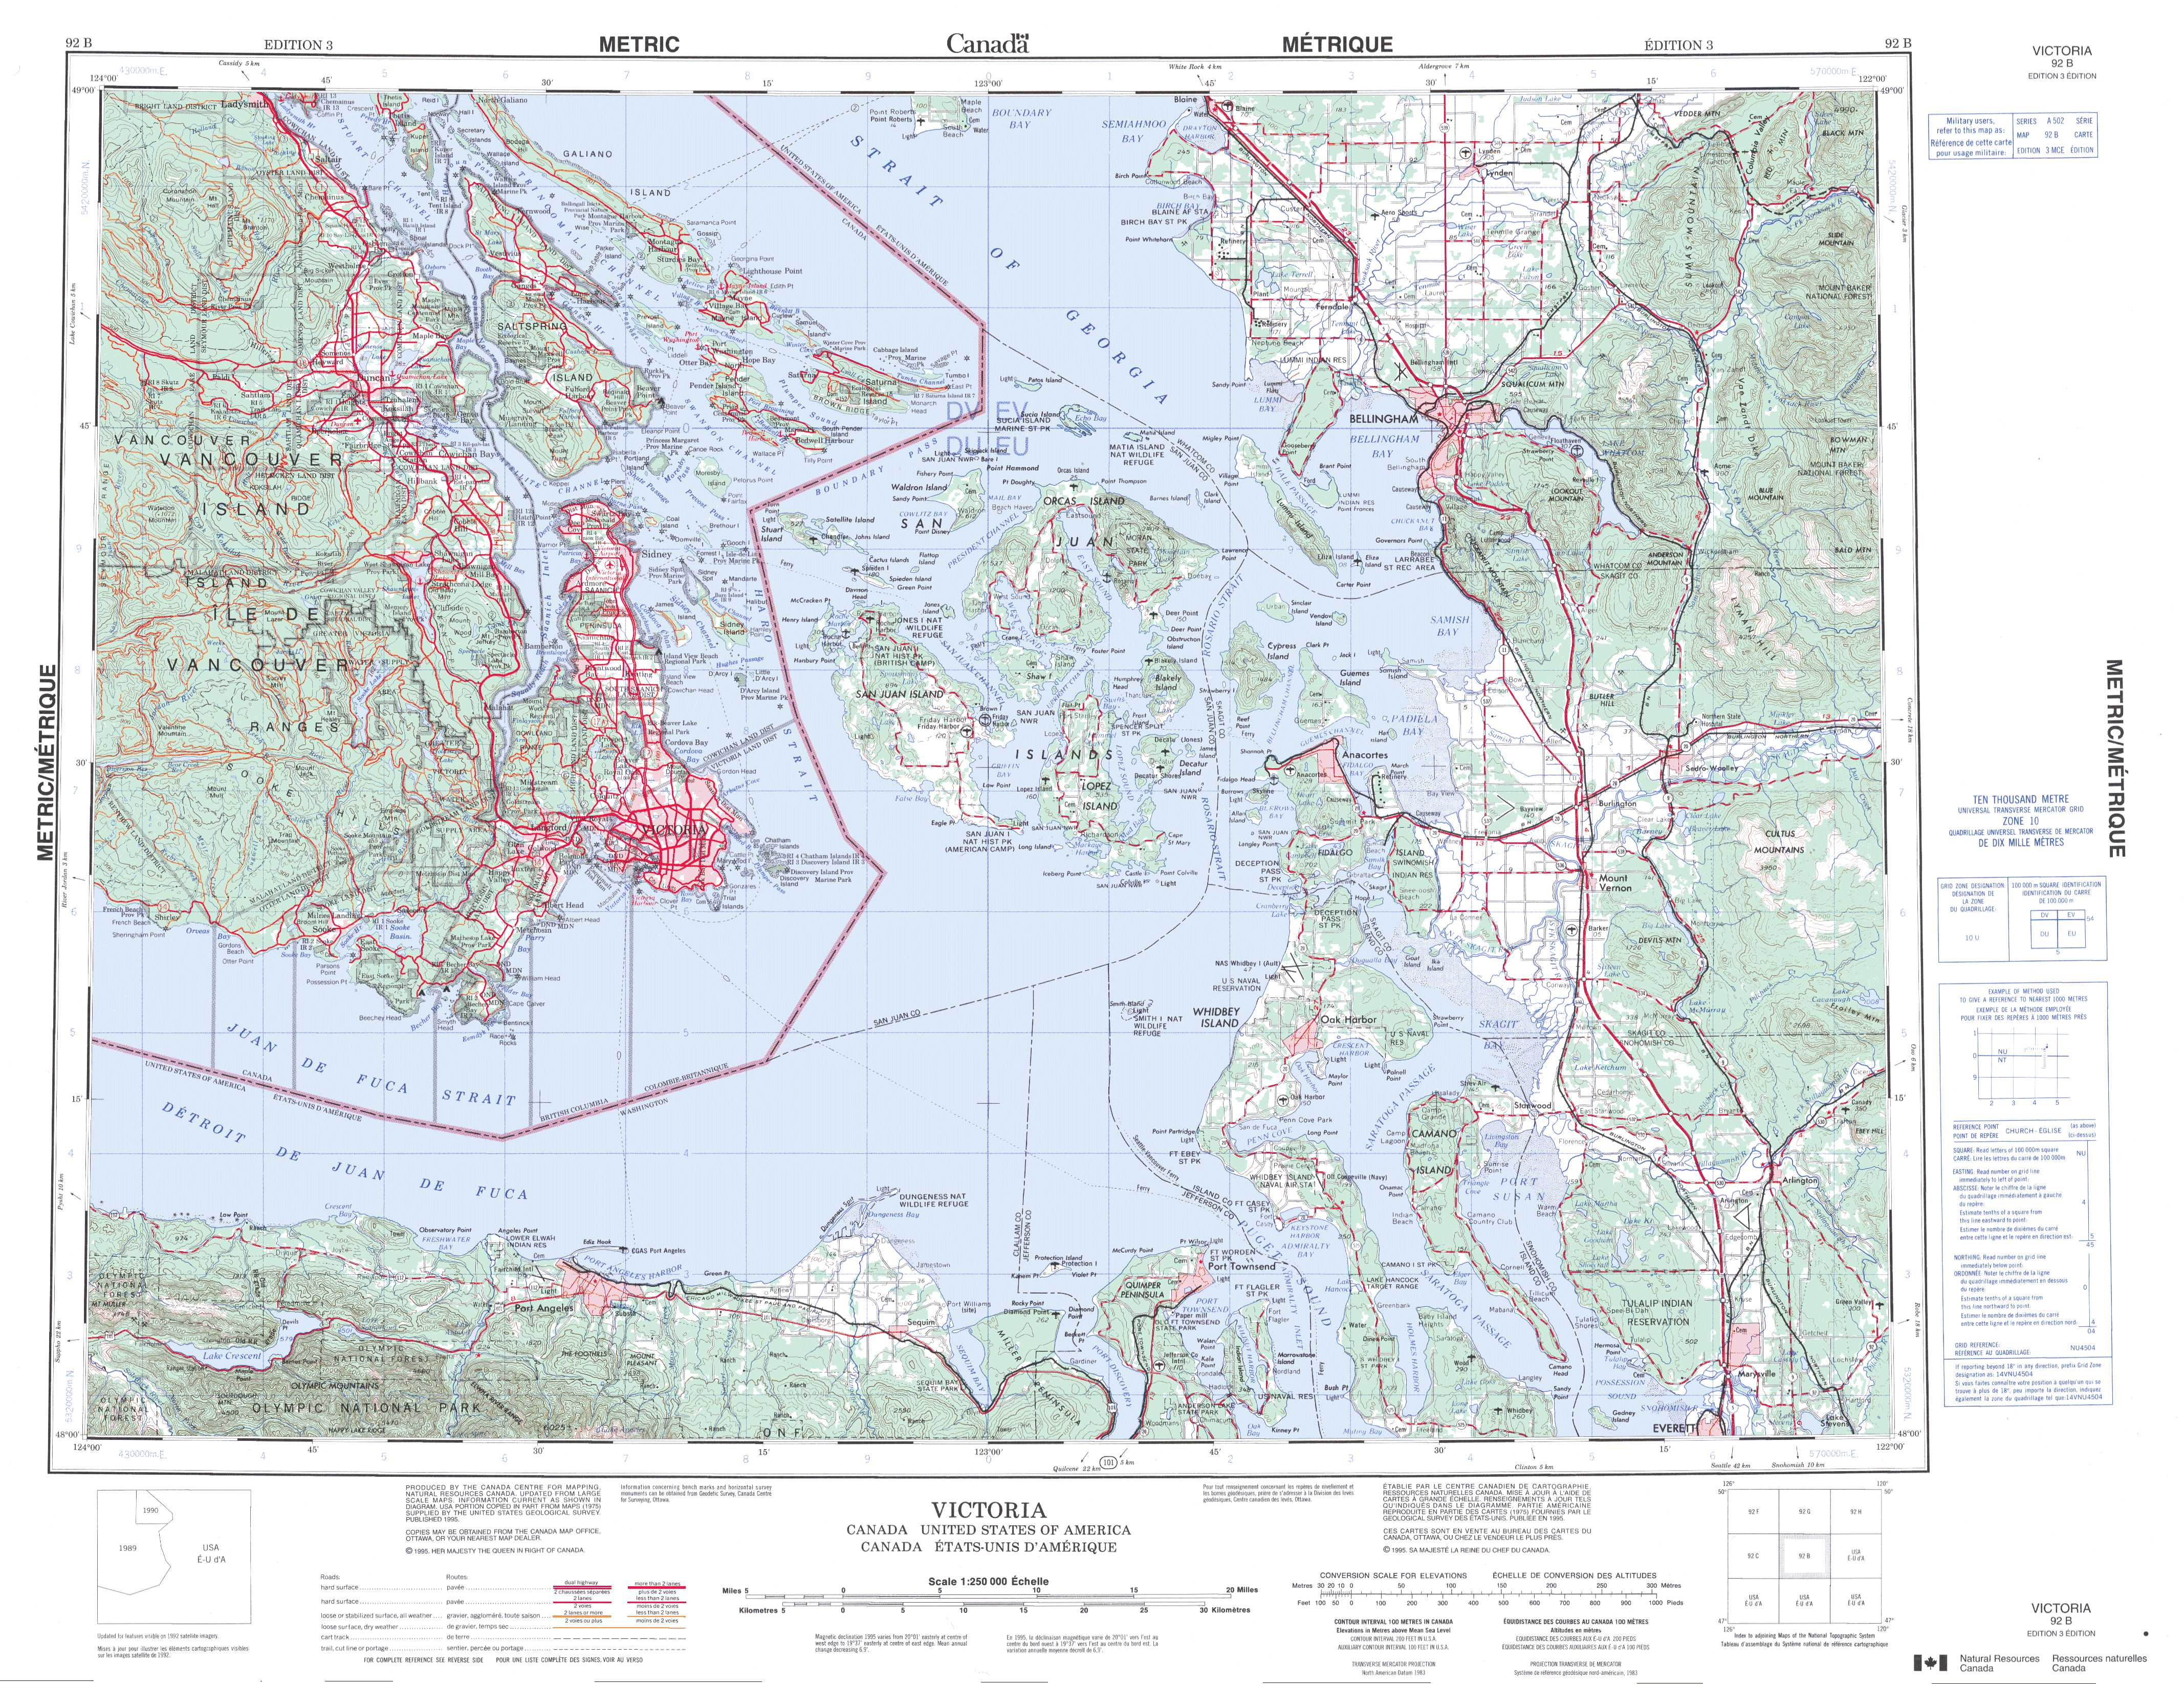 Printable Topographic Map Of Victoria 092B, Bc - Free Printable Topo Maps Online